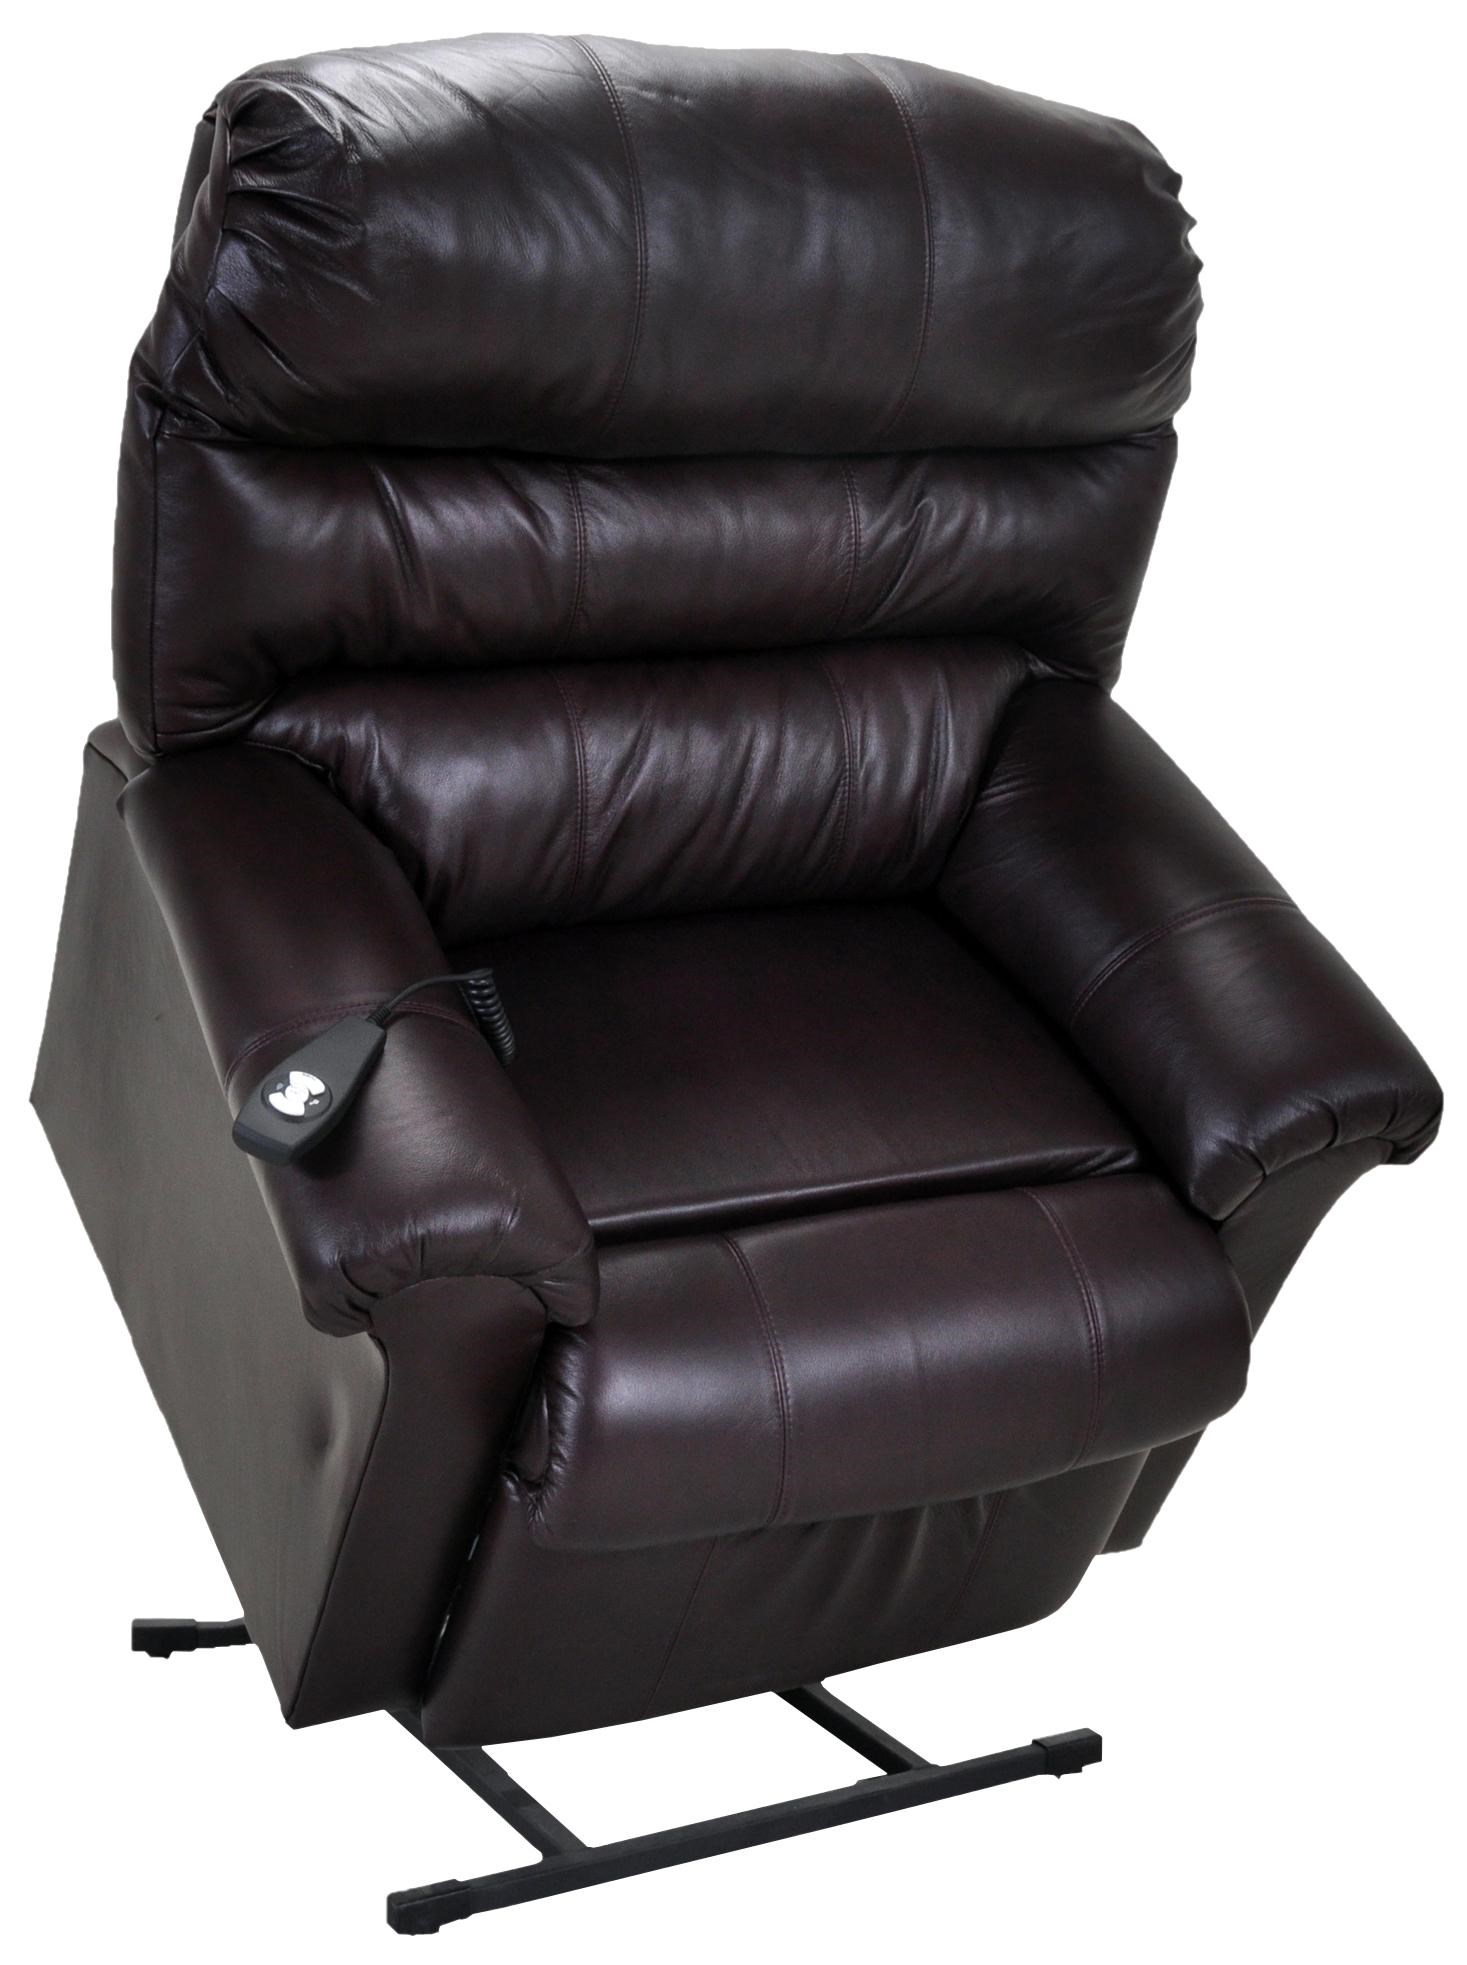 Franklin Lift And Power Recliners Chocolate Leather Lift Chair   Great  American Home Store   Lift Recliner